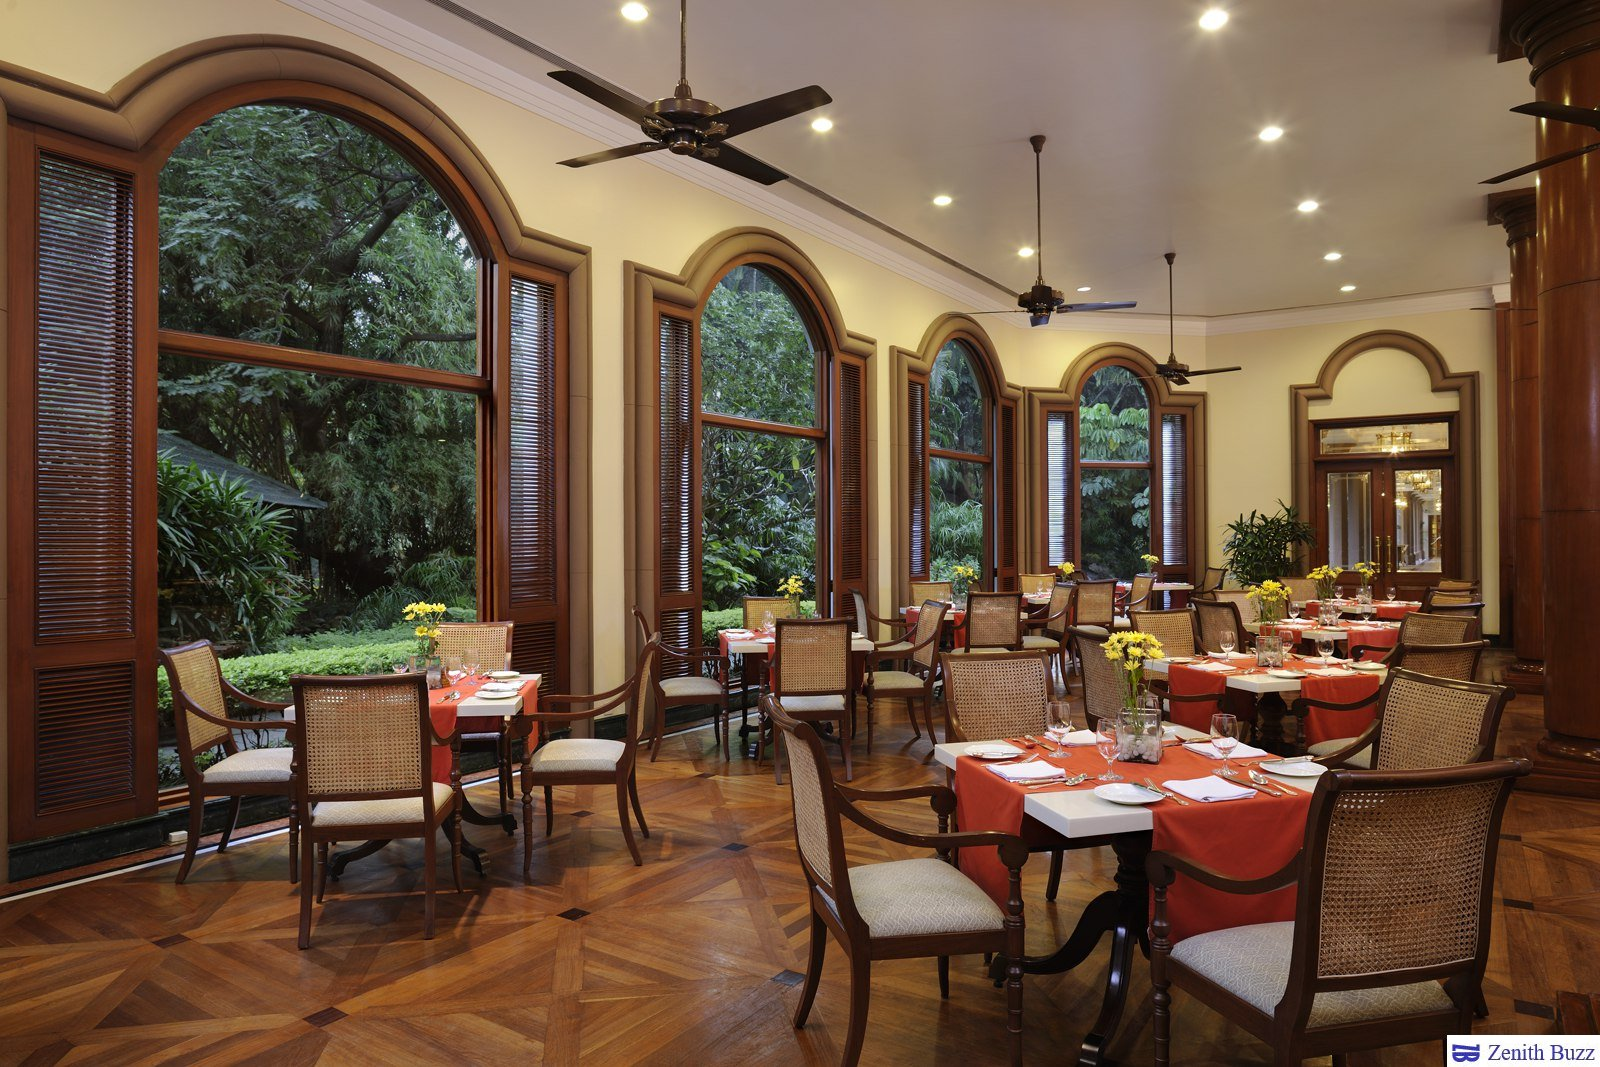 Romantic Restaurant to celebrate Valentines day in Bangalore